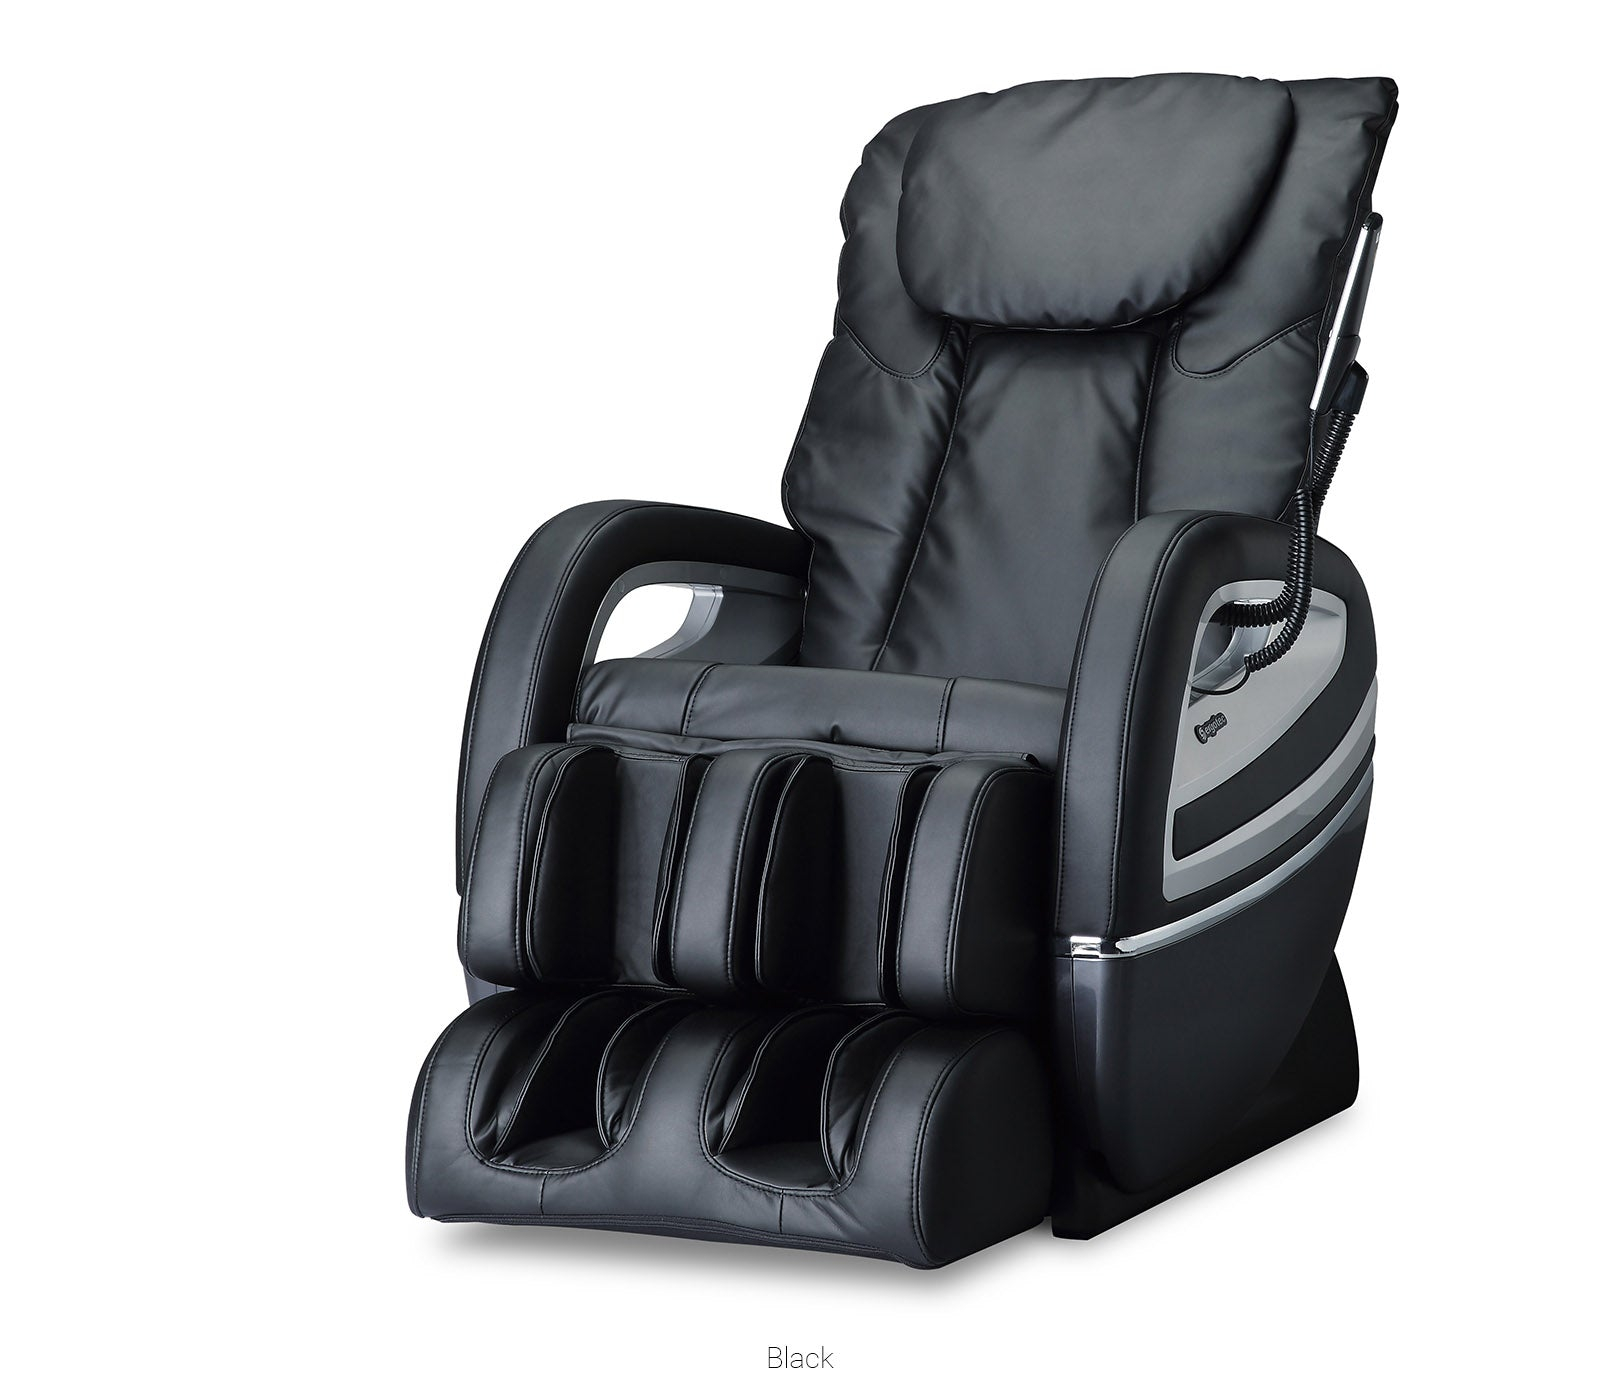 Cozzia EC-360D Massage Chair